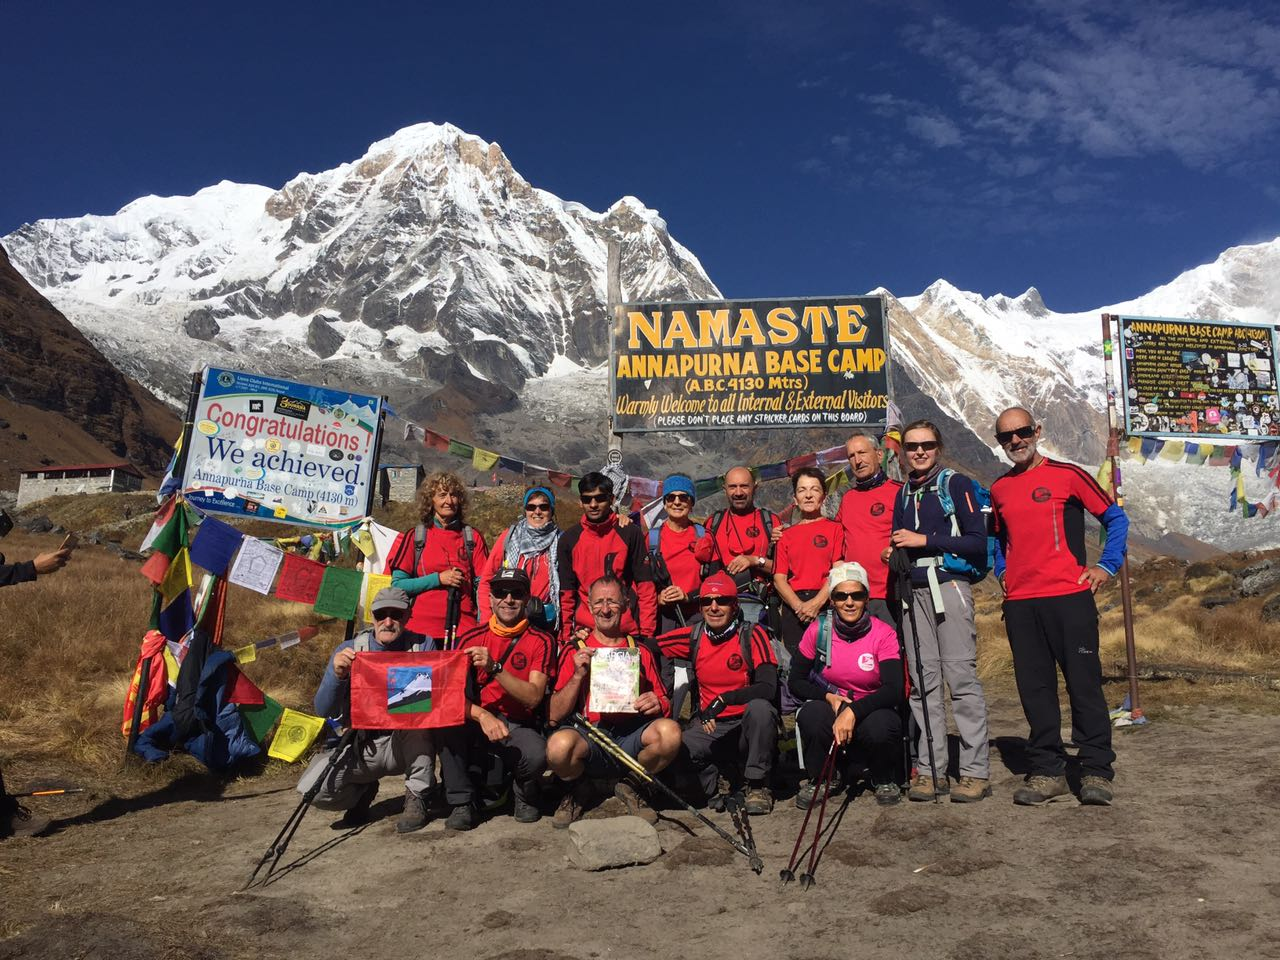 Short Annapurna Base Camp Trek